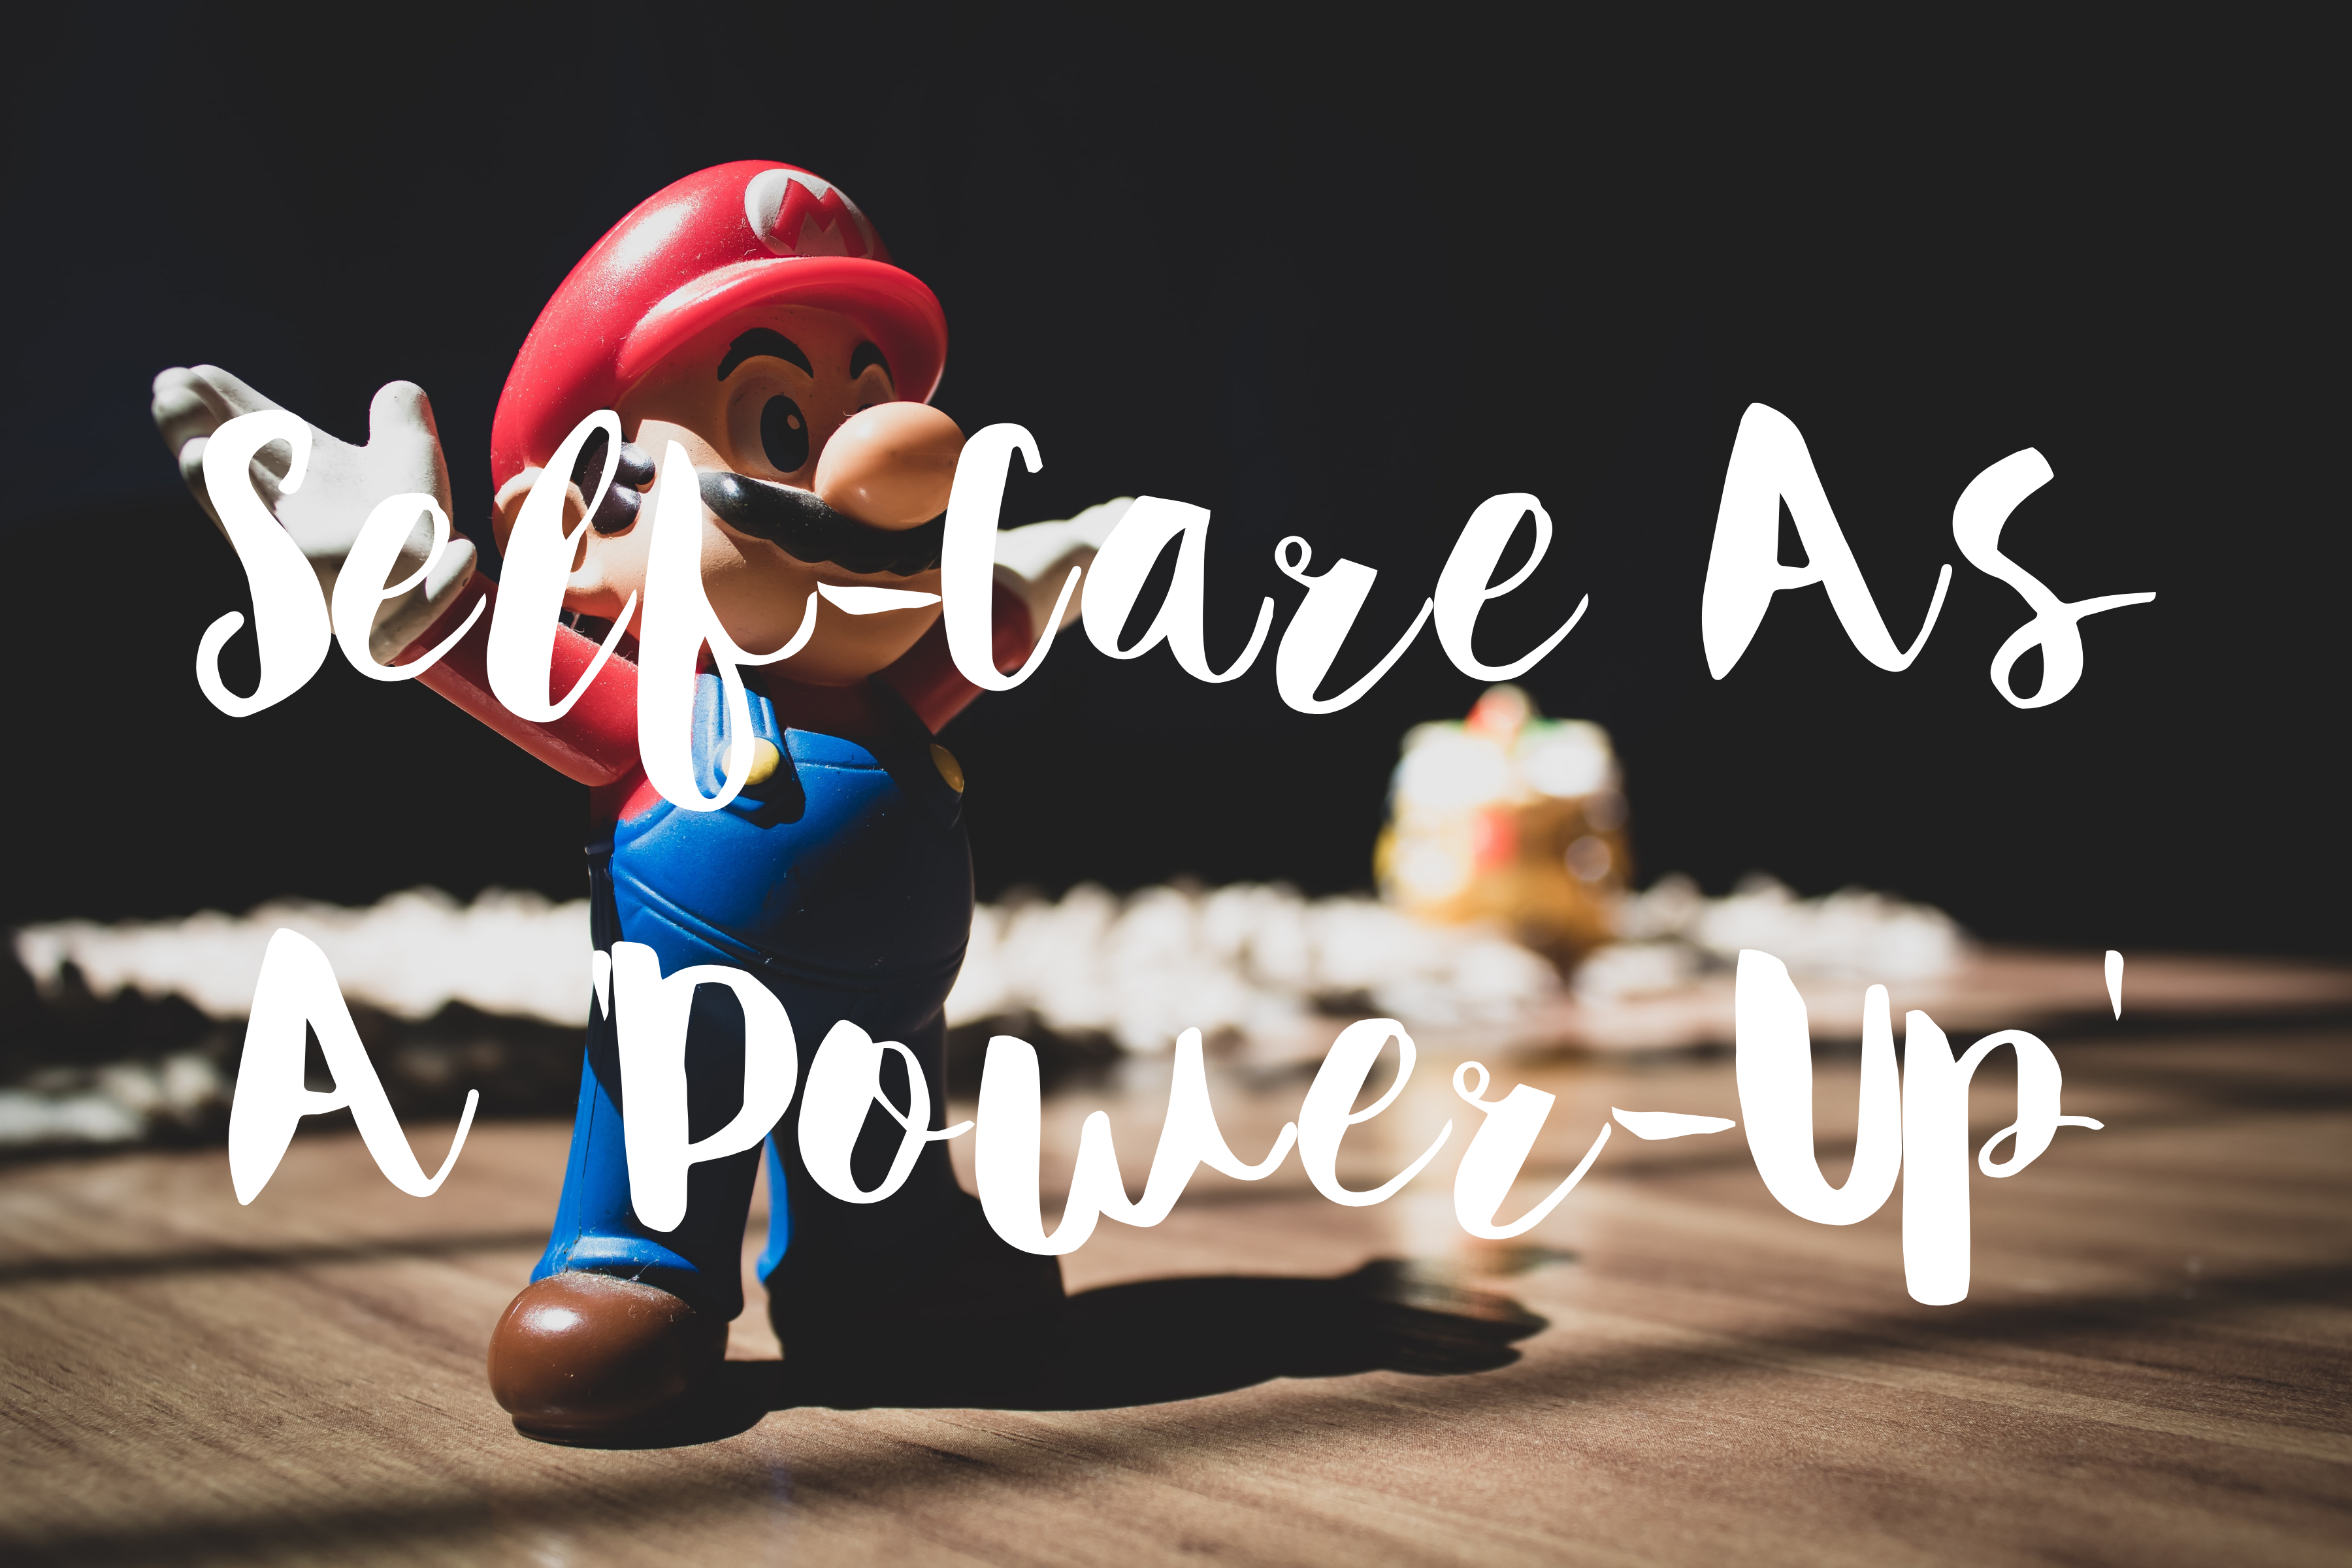 self-care as a 'power-up'